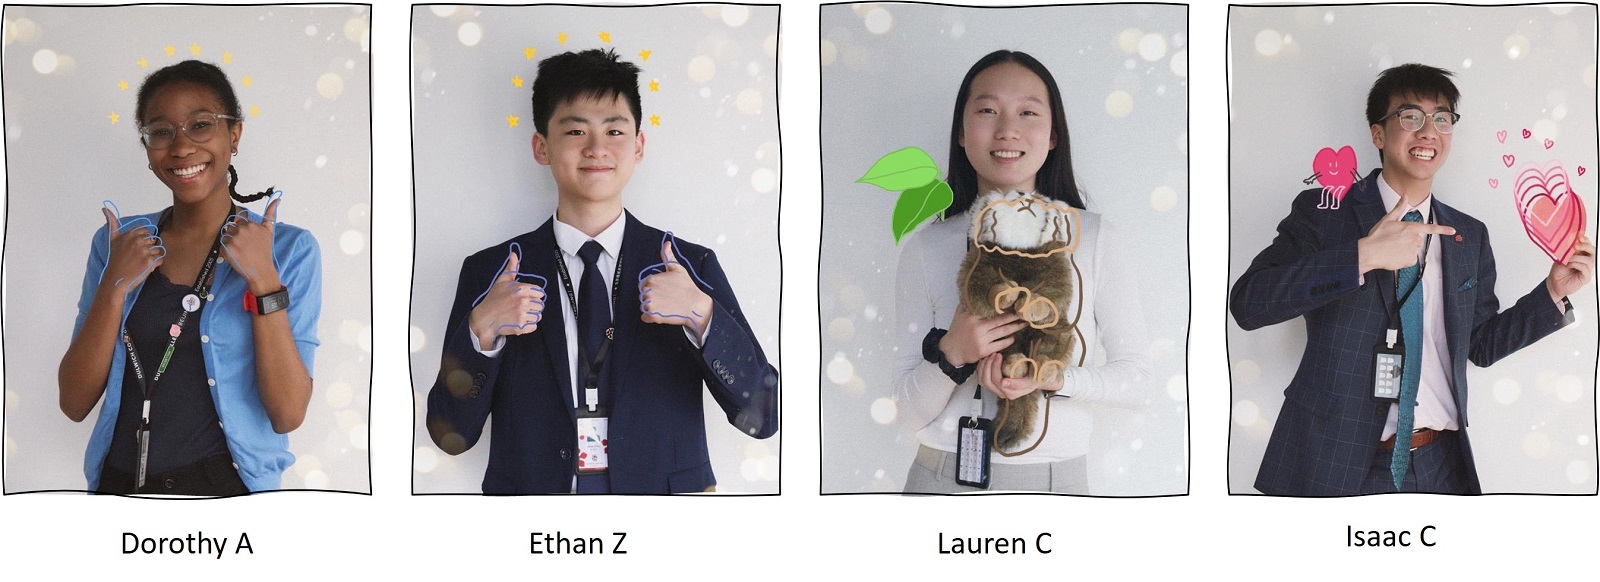 our prefect leaders